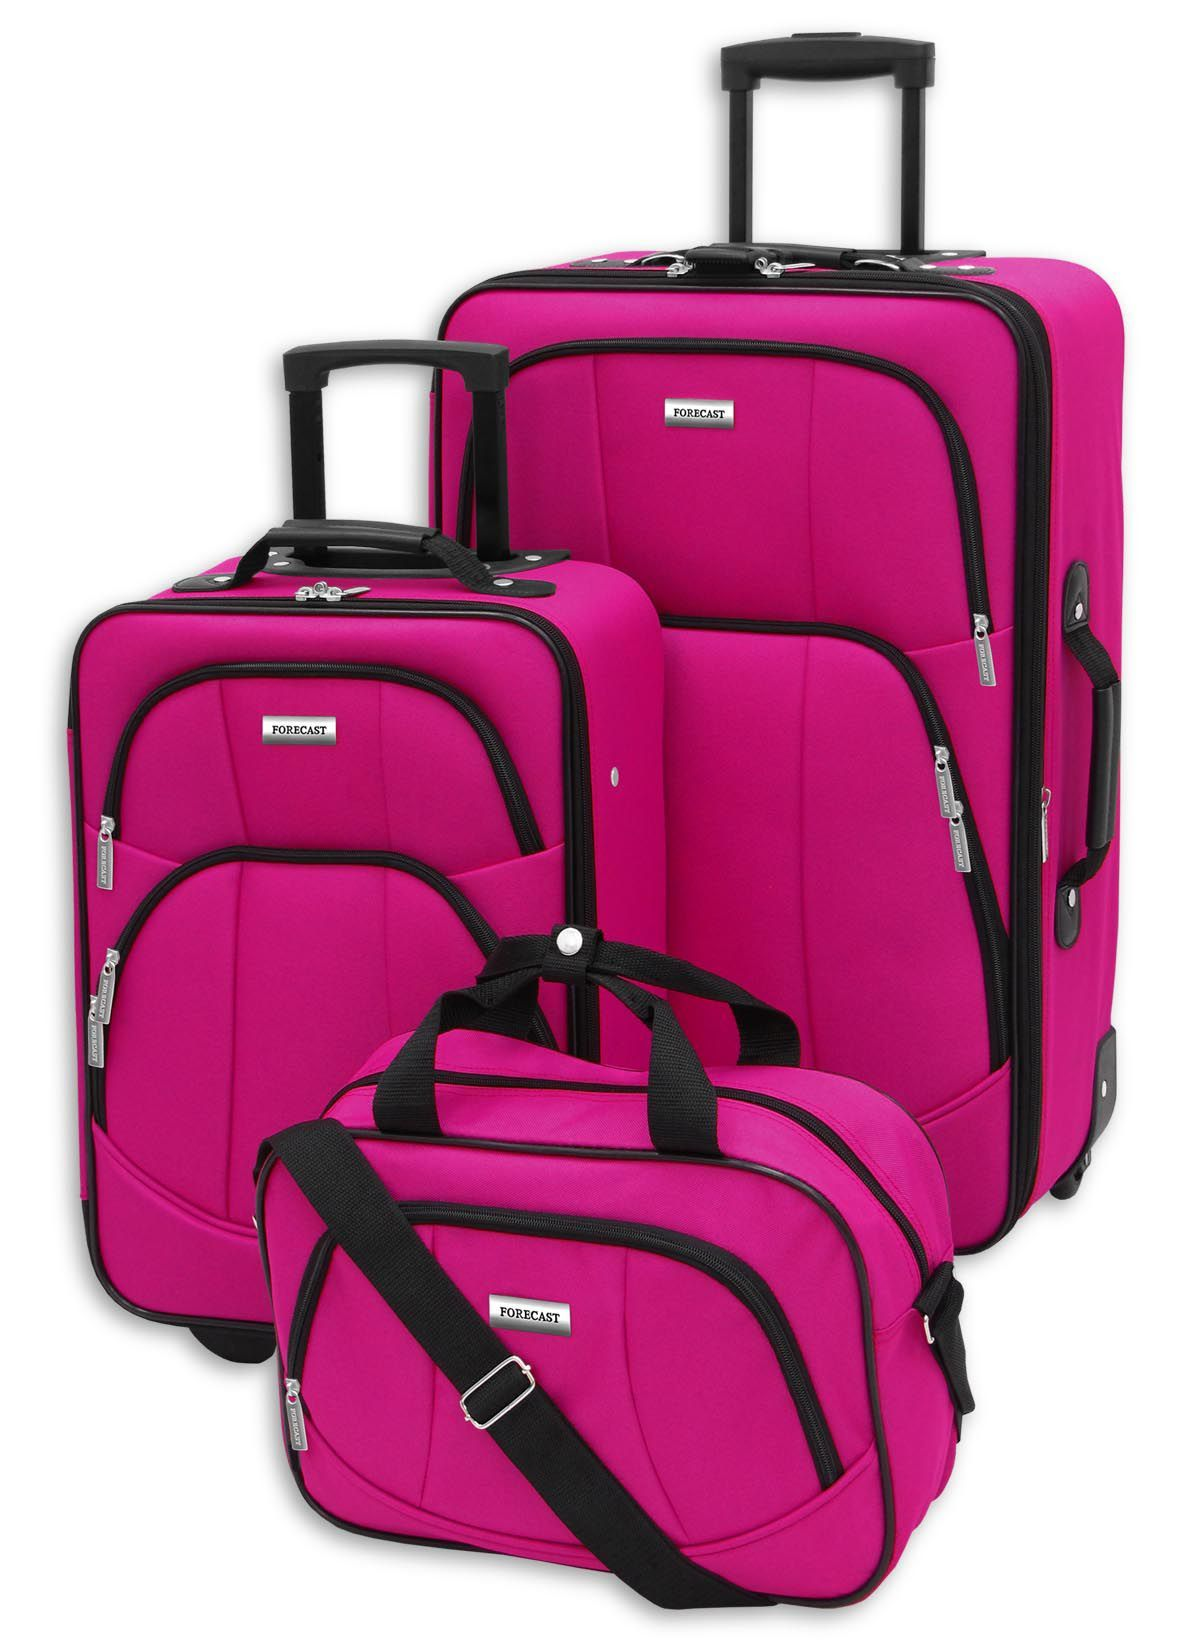 Forecast Magenta Fiji 3 Piece Luggage Set - For the Home - Luggage ...